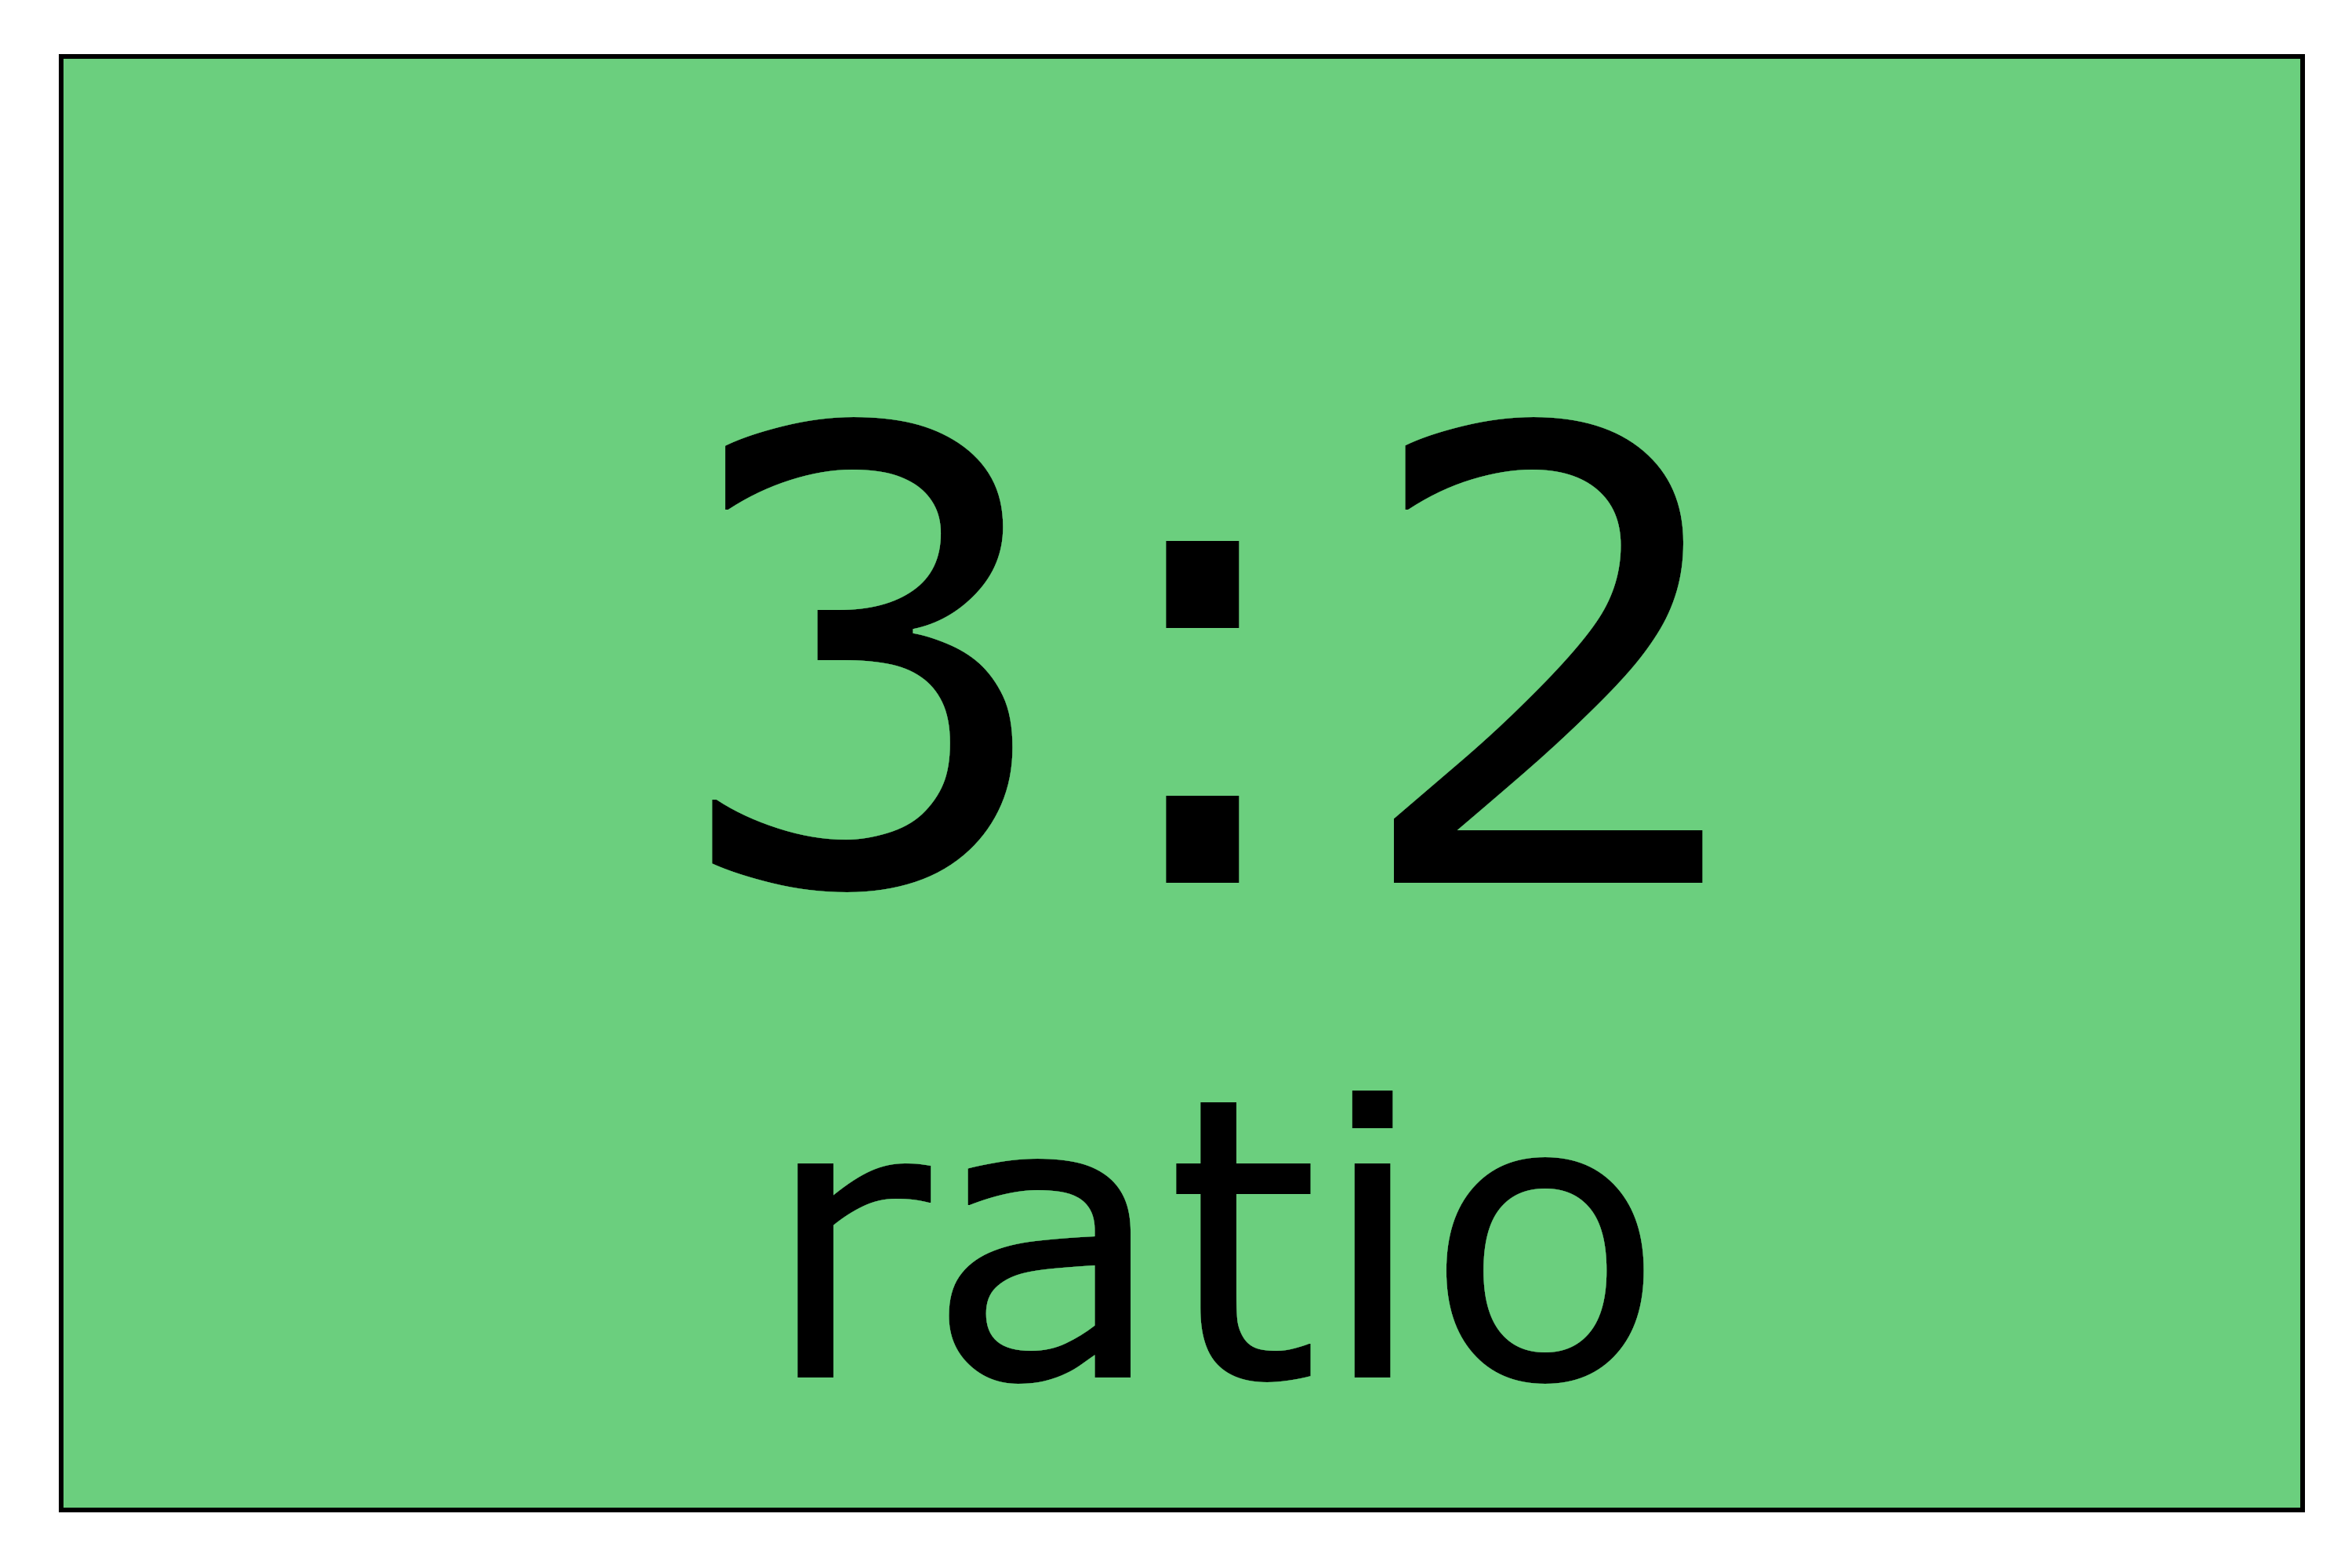 expression of the ratio 3:2 showing what a ratio looks like